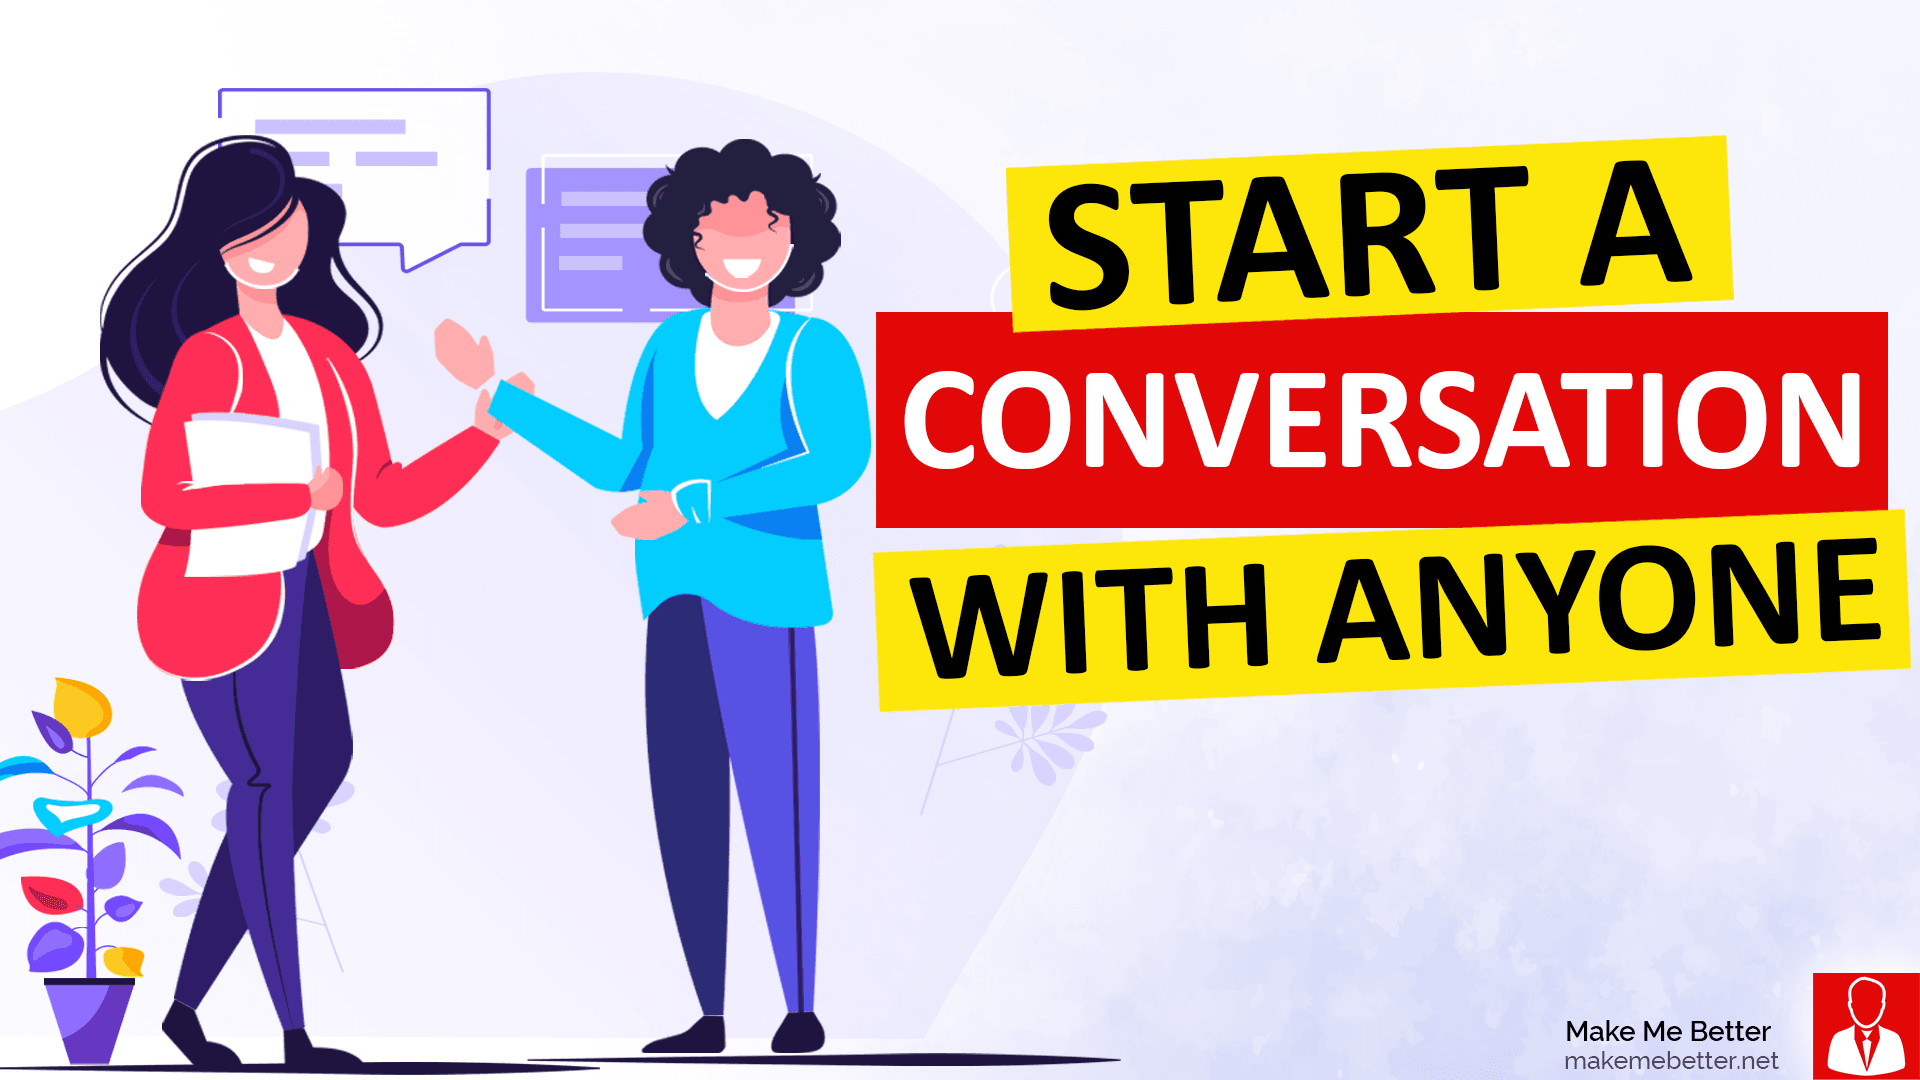 Start a conversation with anyone